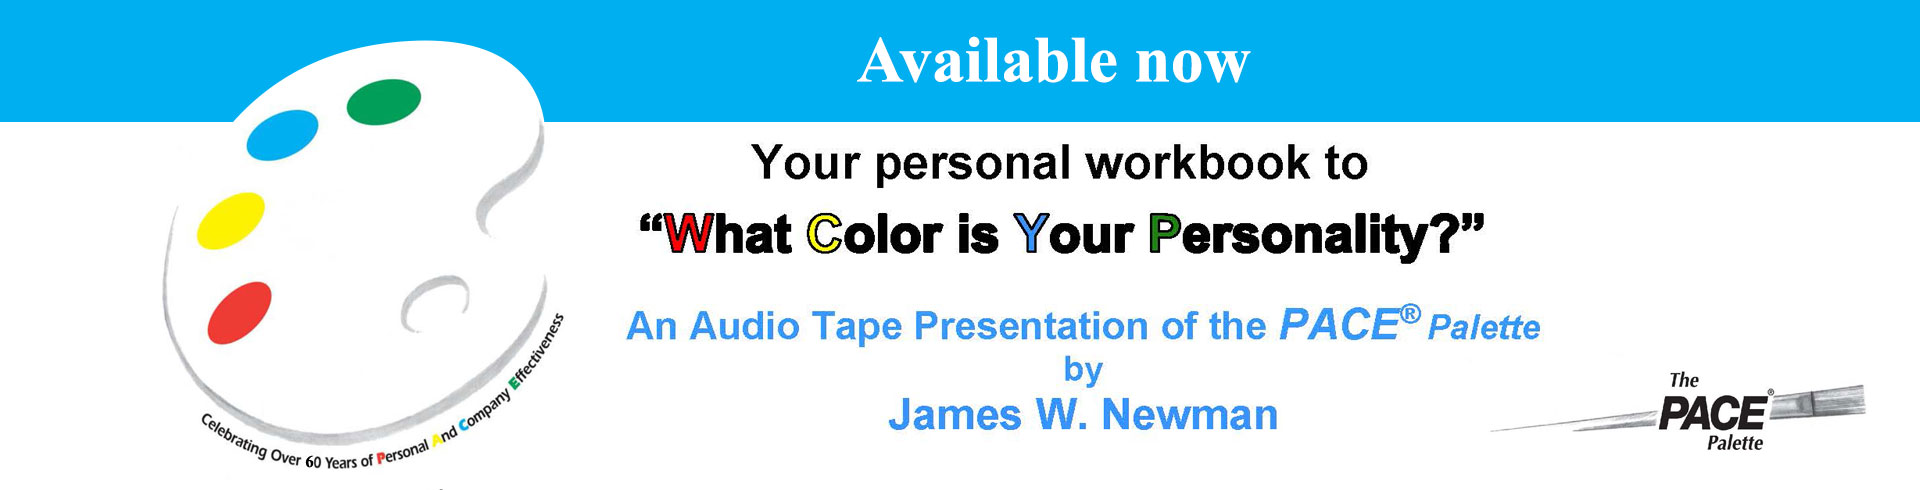 color-is-your-personality